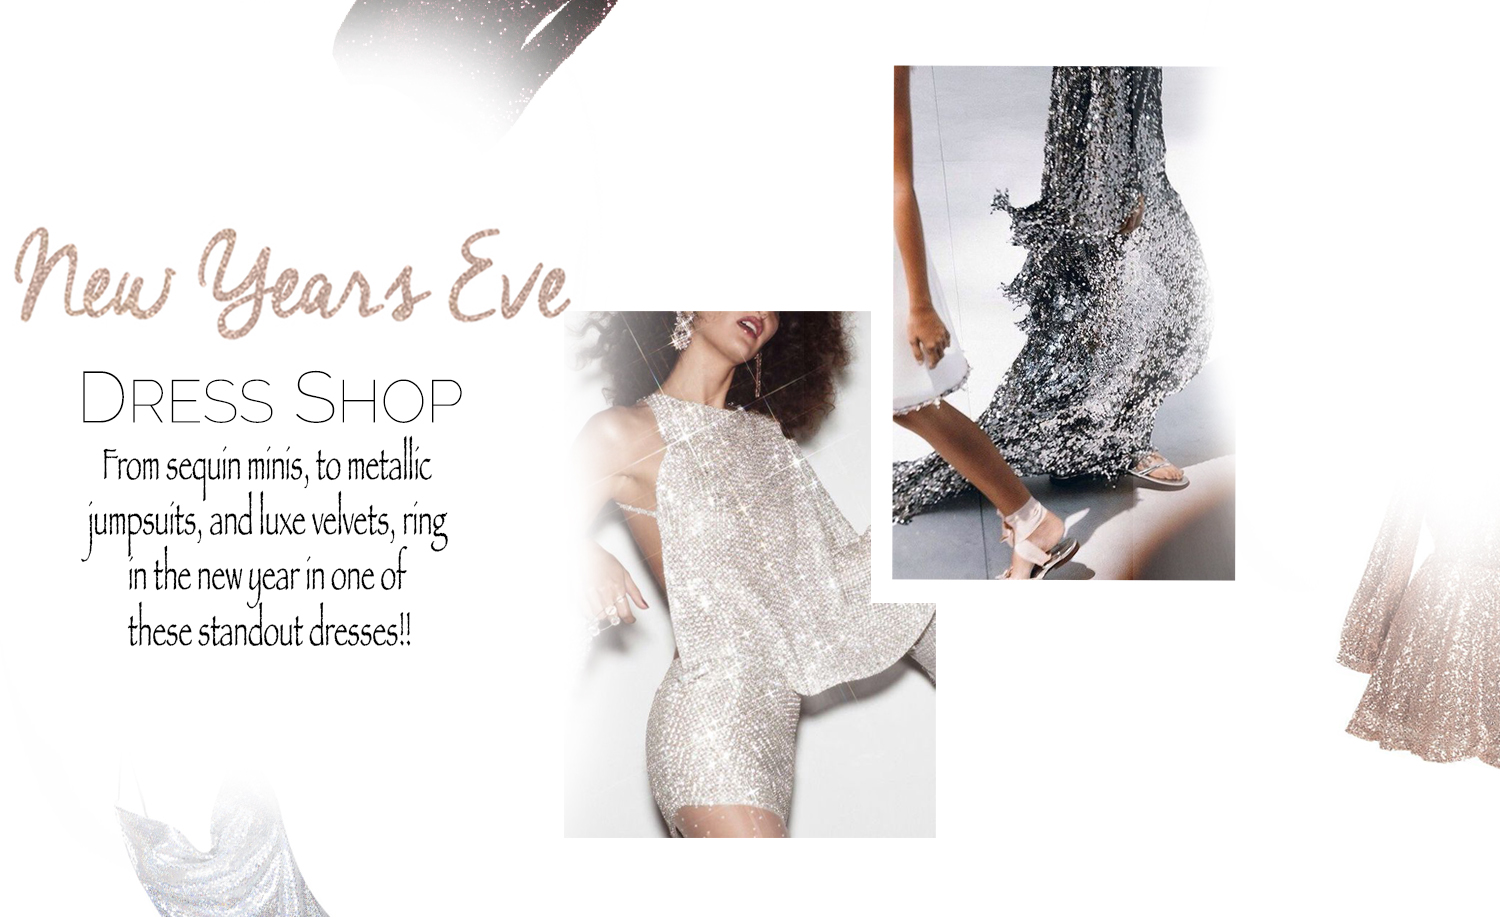 New Years Eve Party Dresses Affordable Dresses Sequin Glittery Inspo